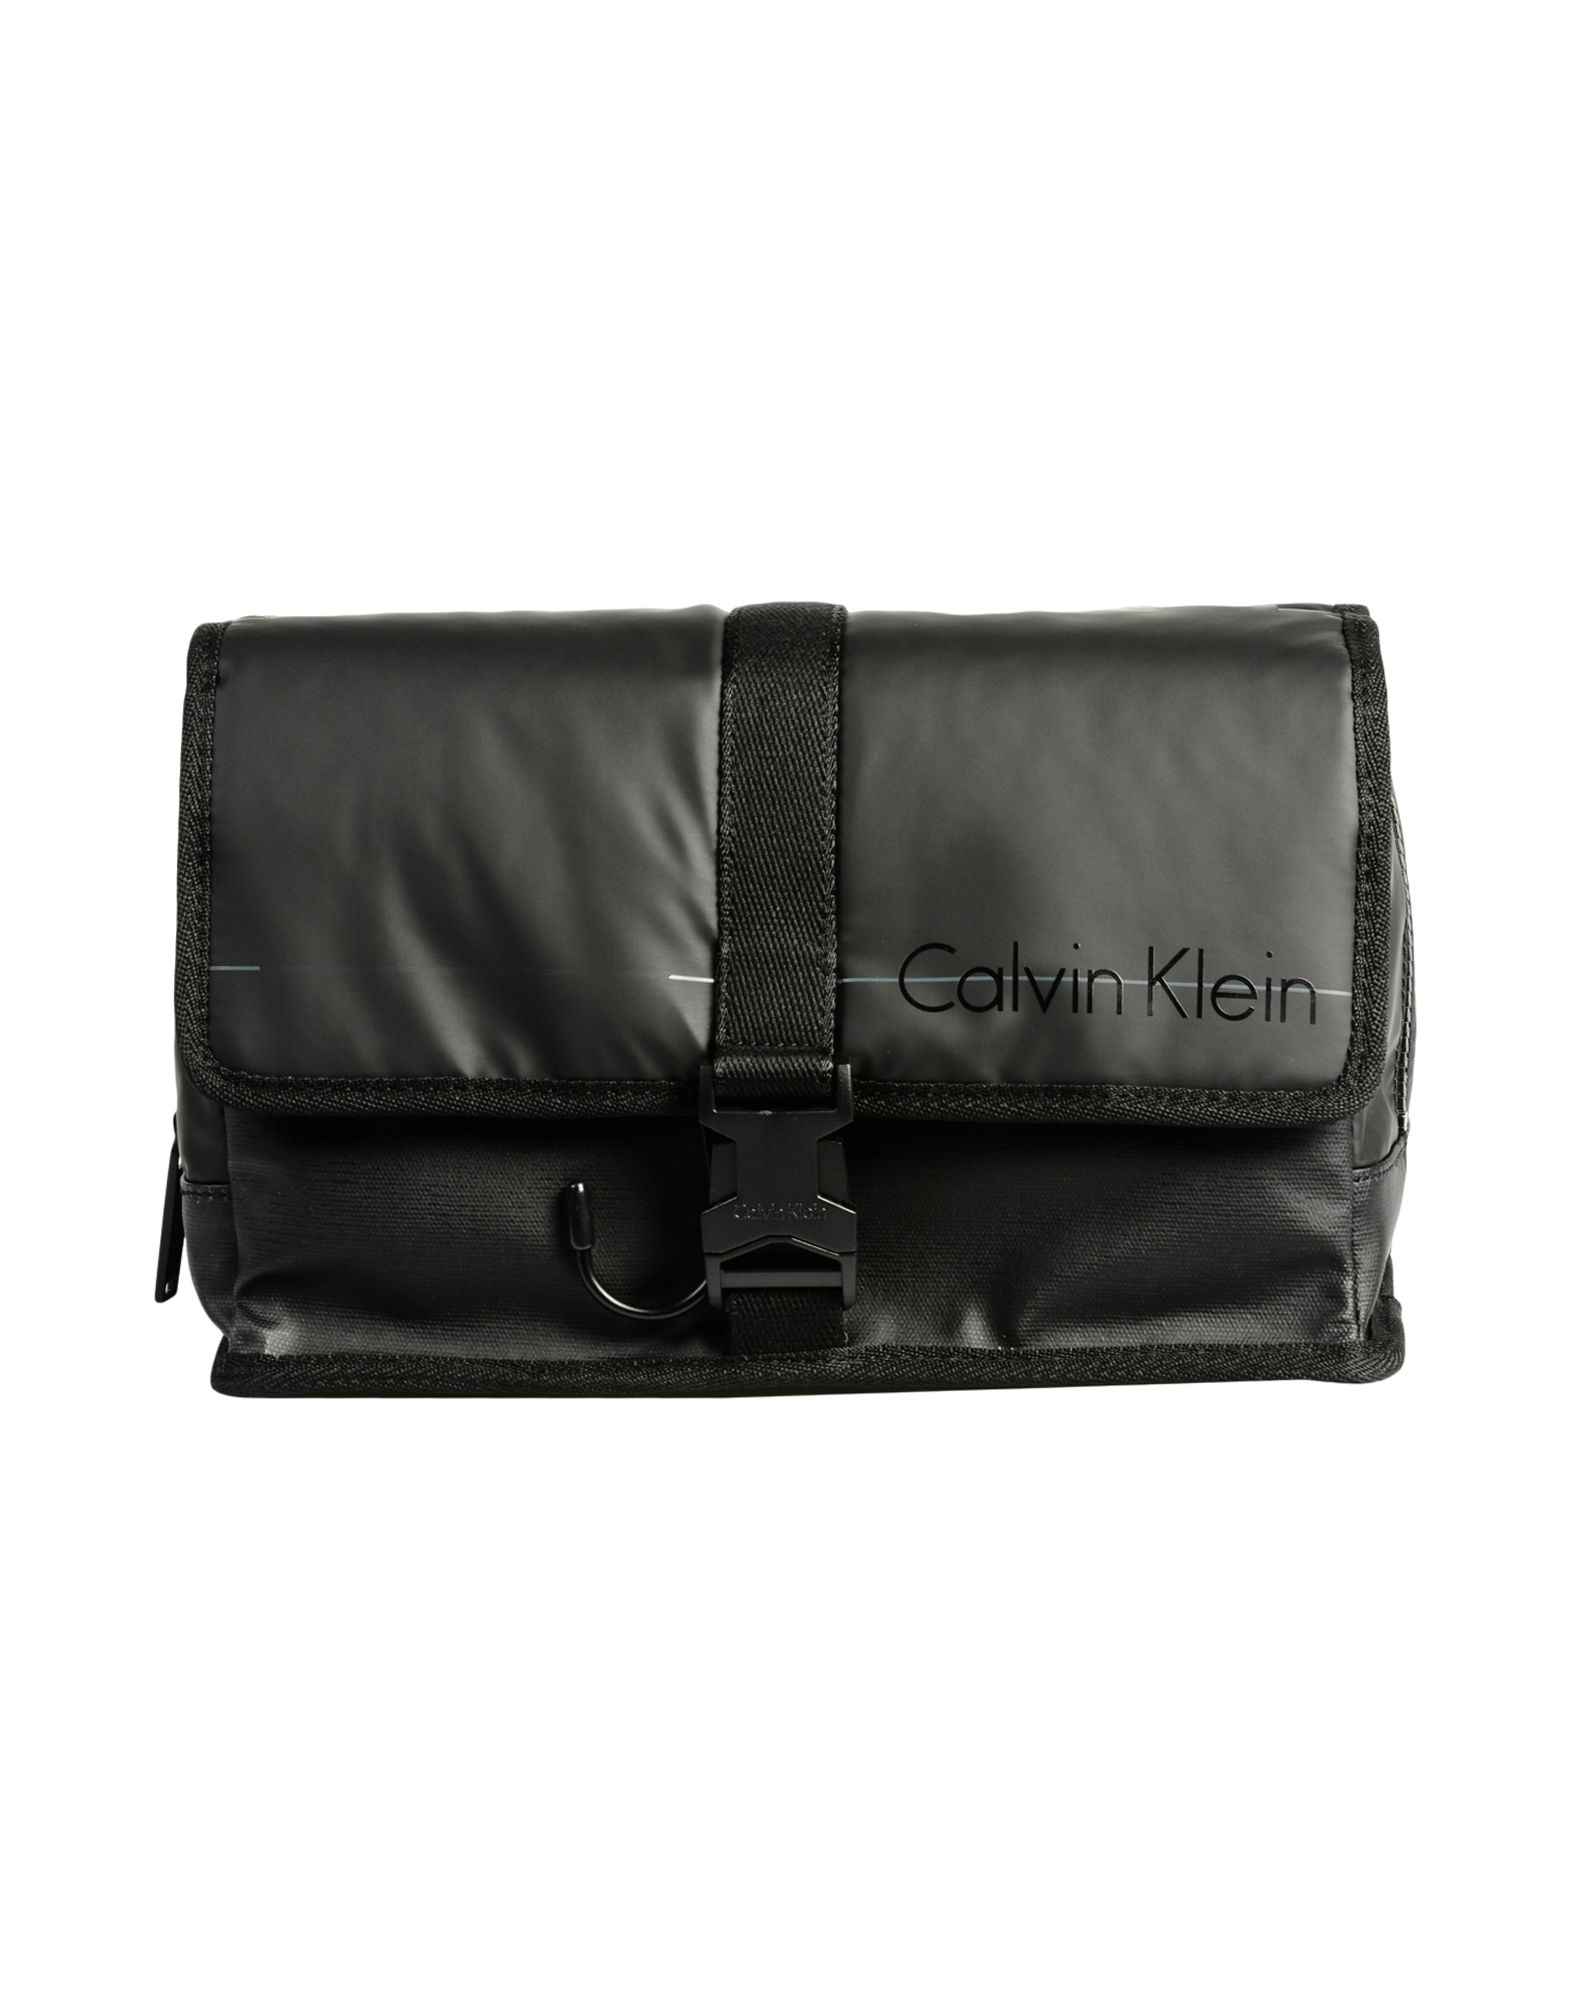 CALVIN KLEIN Beauty case